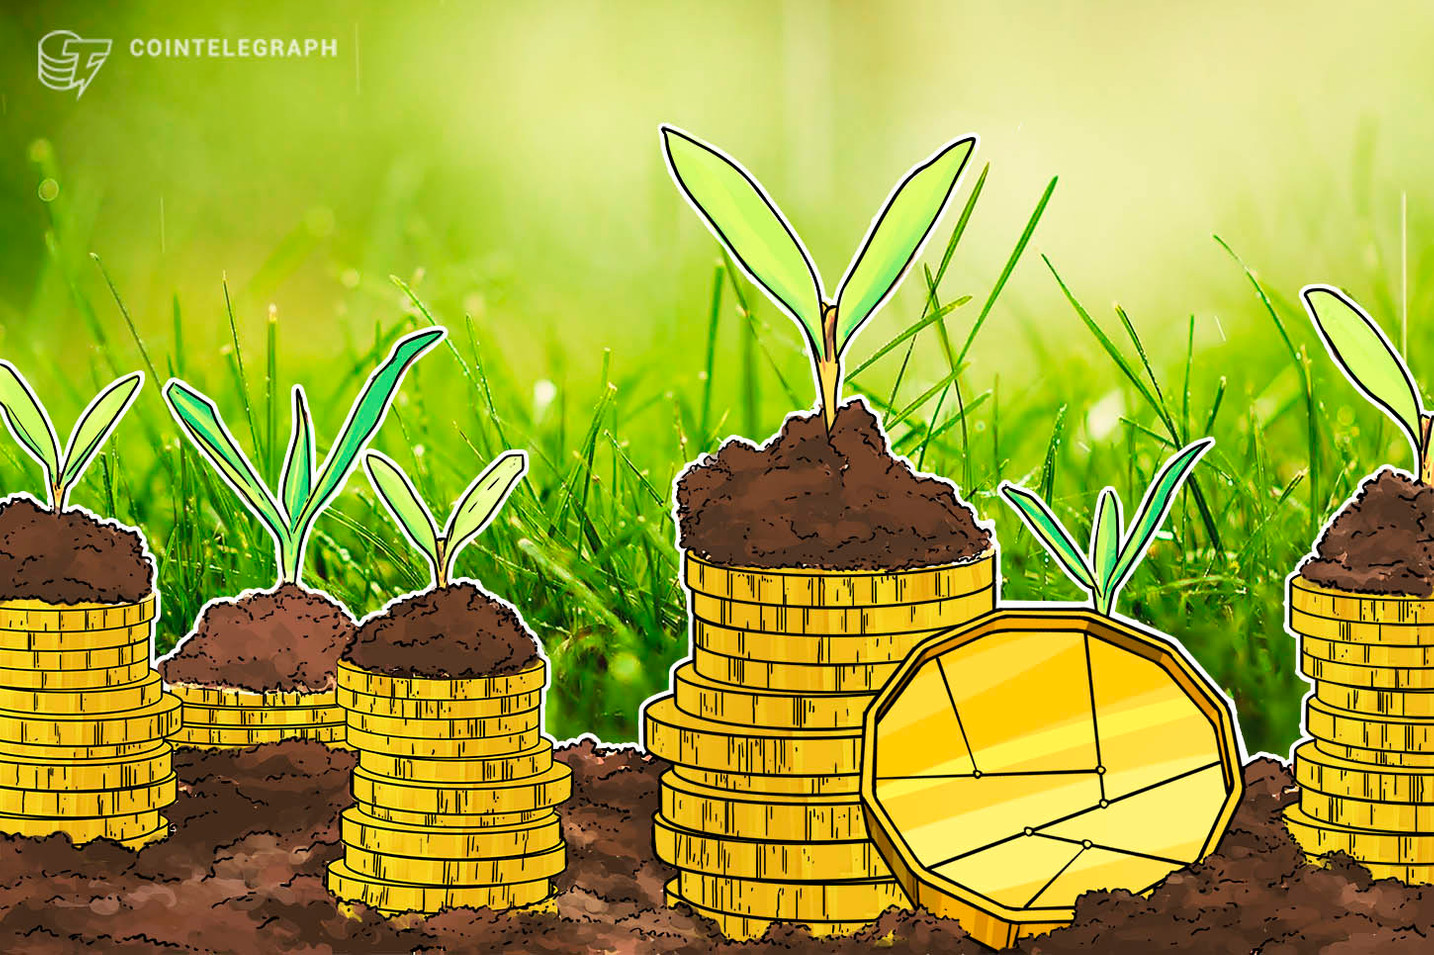 Top Crypto Exchange Binance Seeks 20 Major Partners for Giant $1 Bln Fund